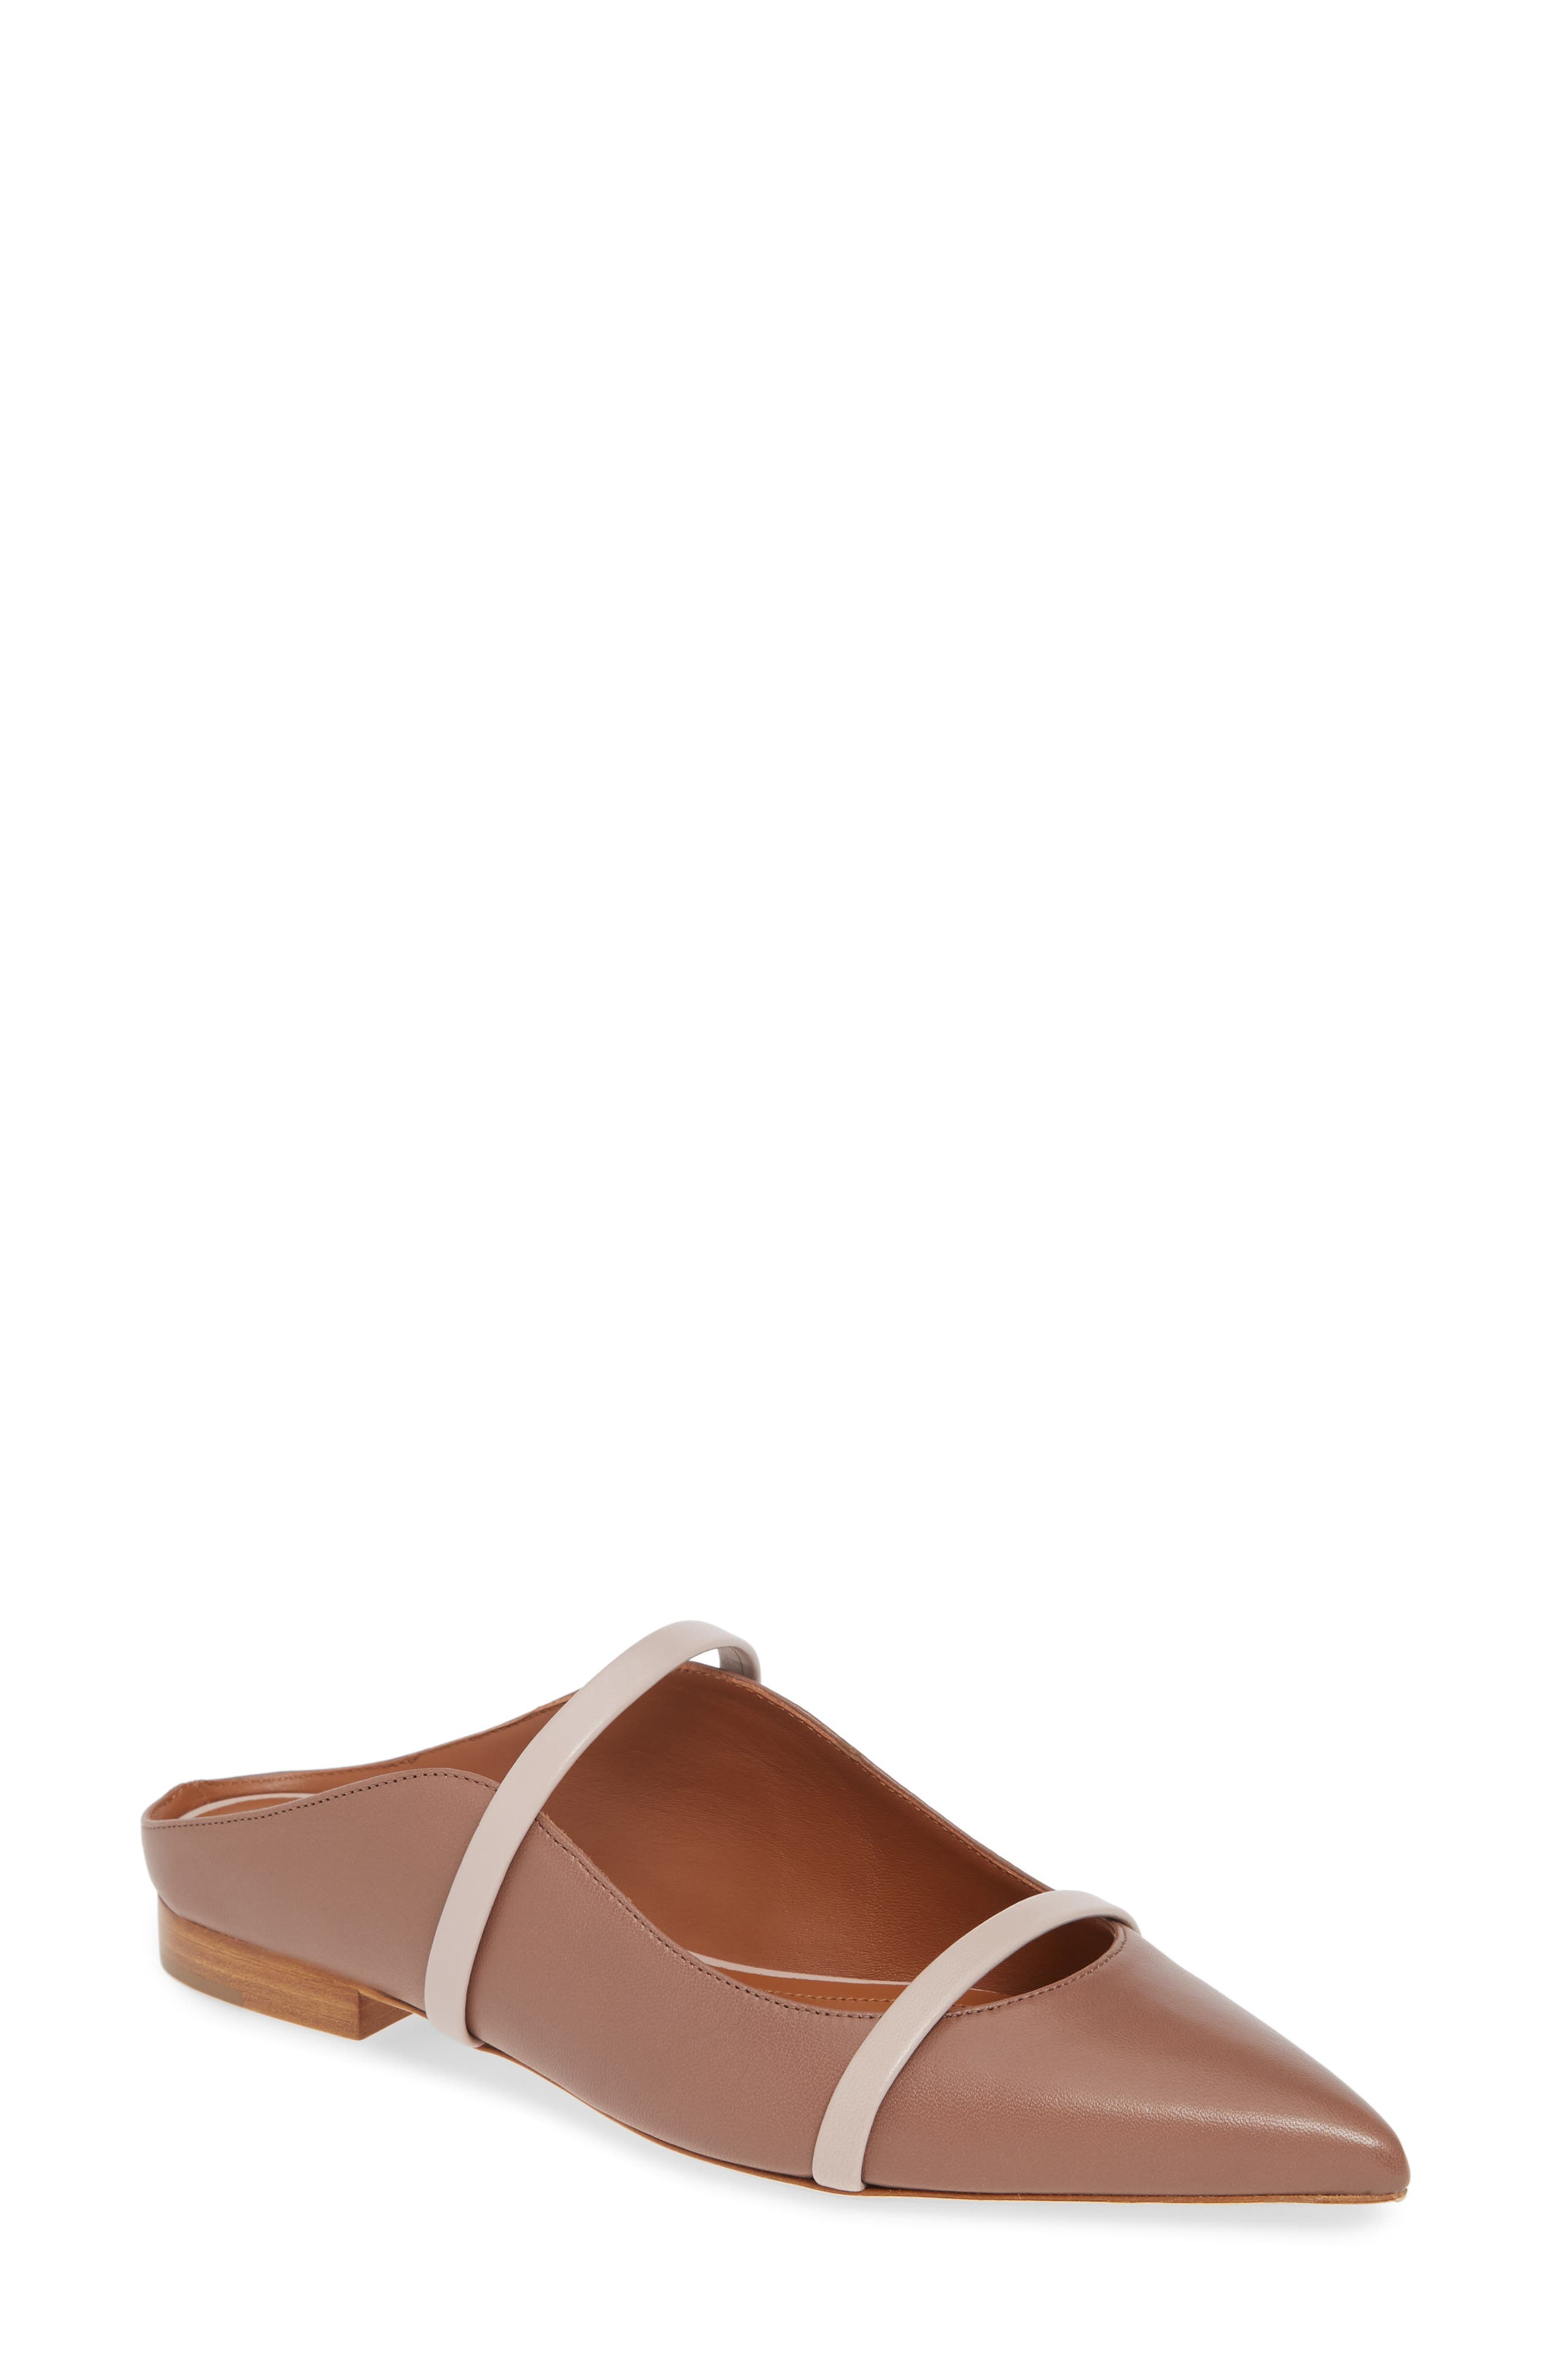 Malone Souliers Maureen Pointy Toe Flat - Brown